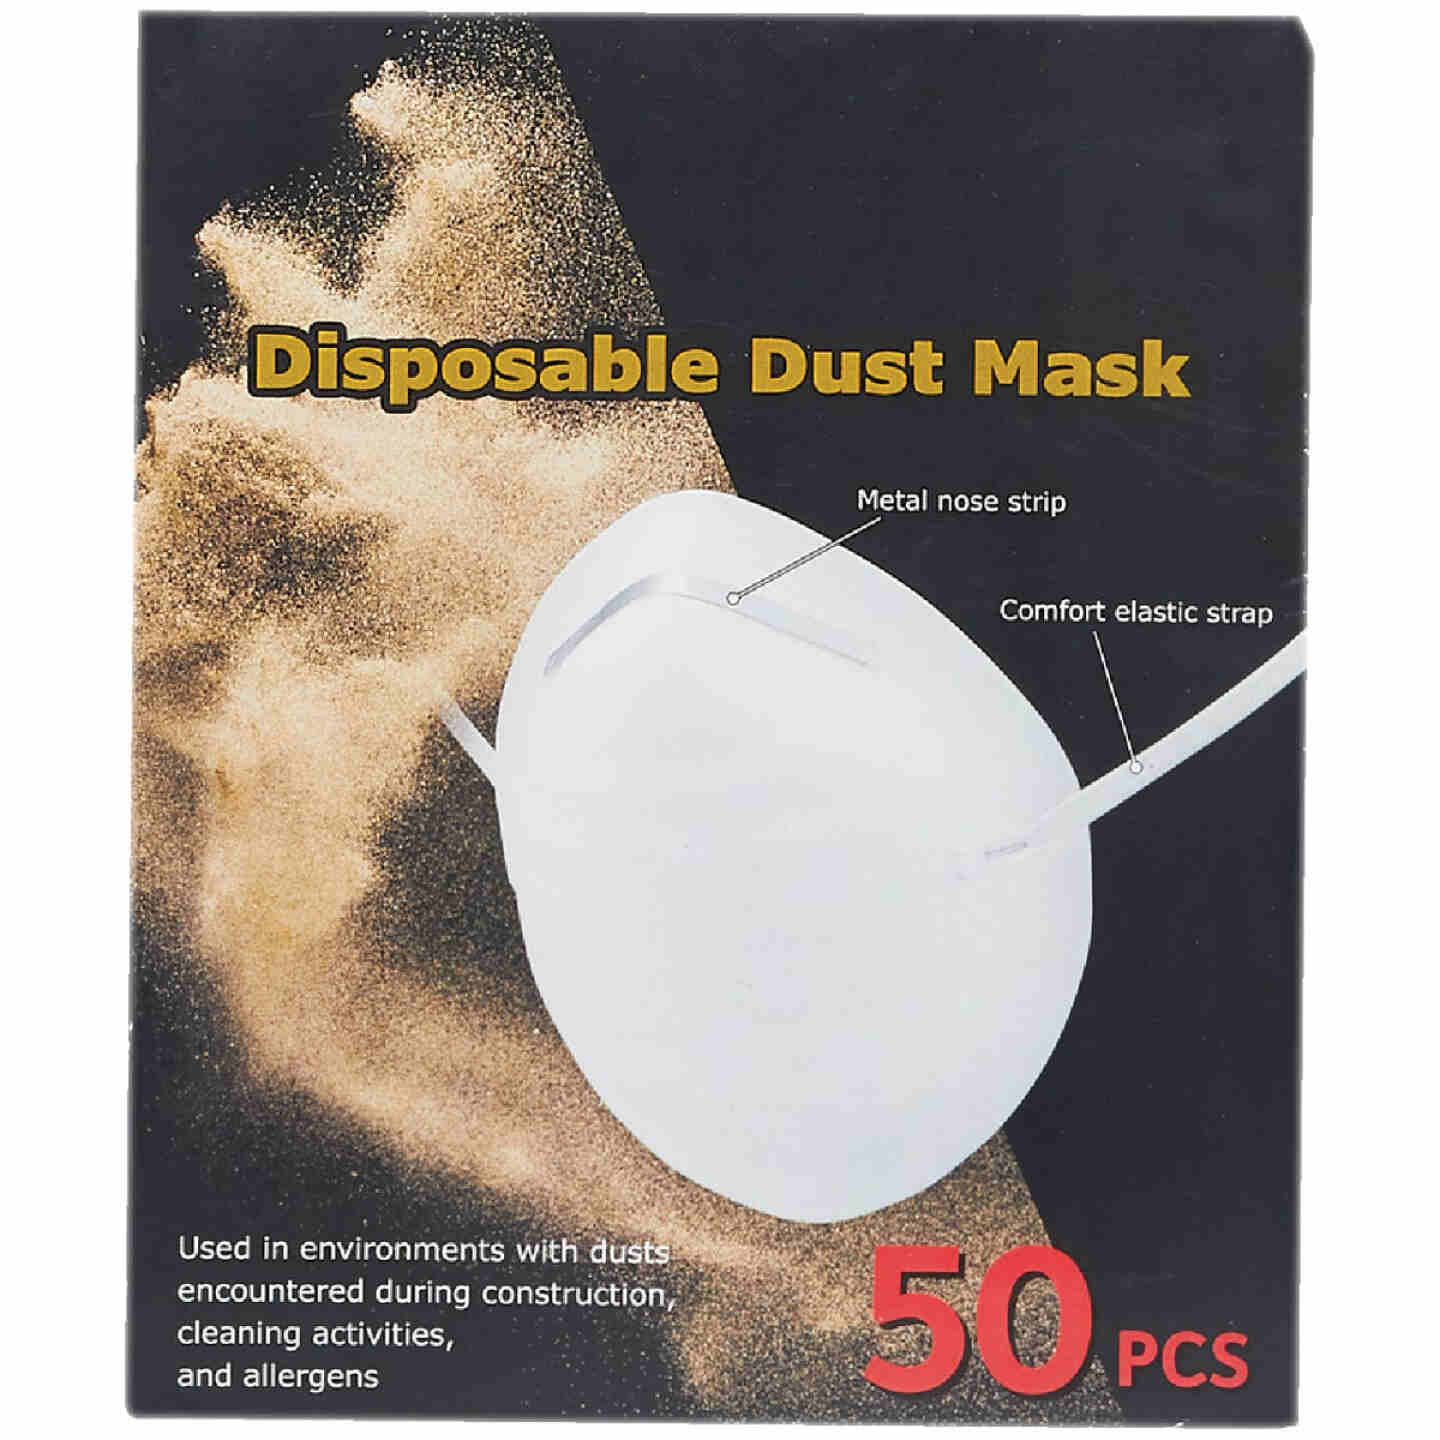 Disposable Dust & Face Mask (50-Pack) Image 2